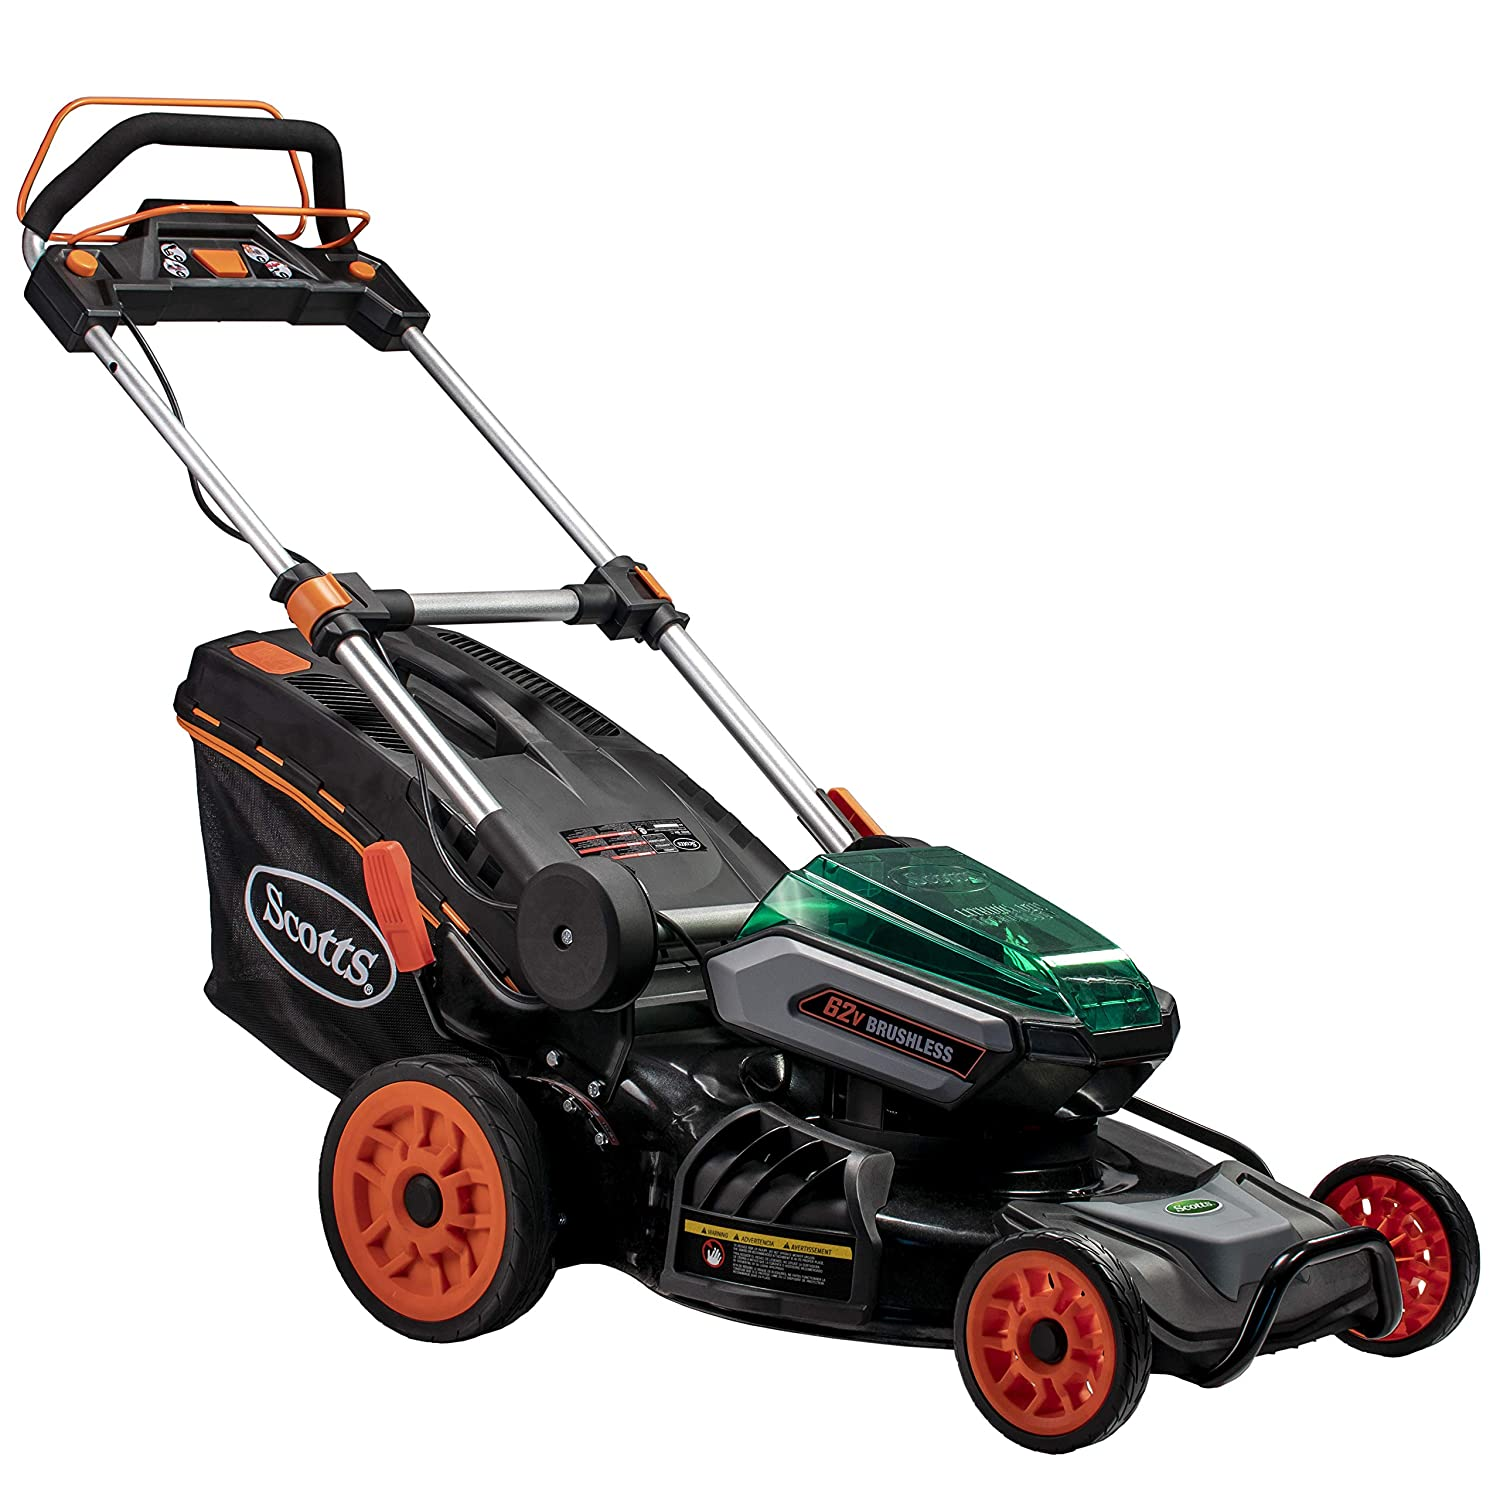 best self-propelled lawn mower for large lawns - Scotts